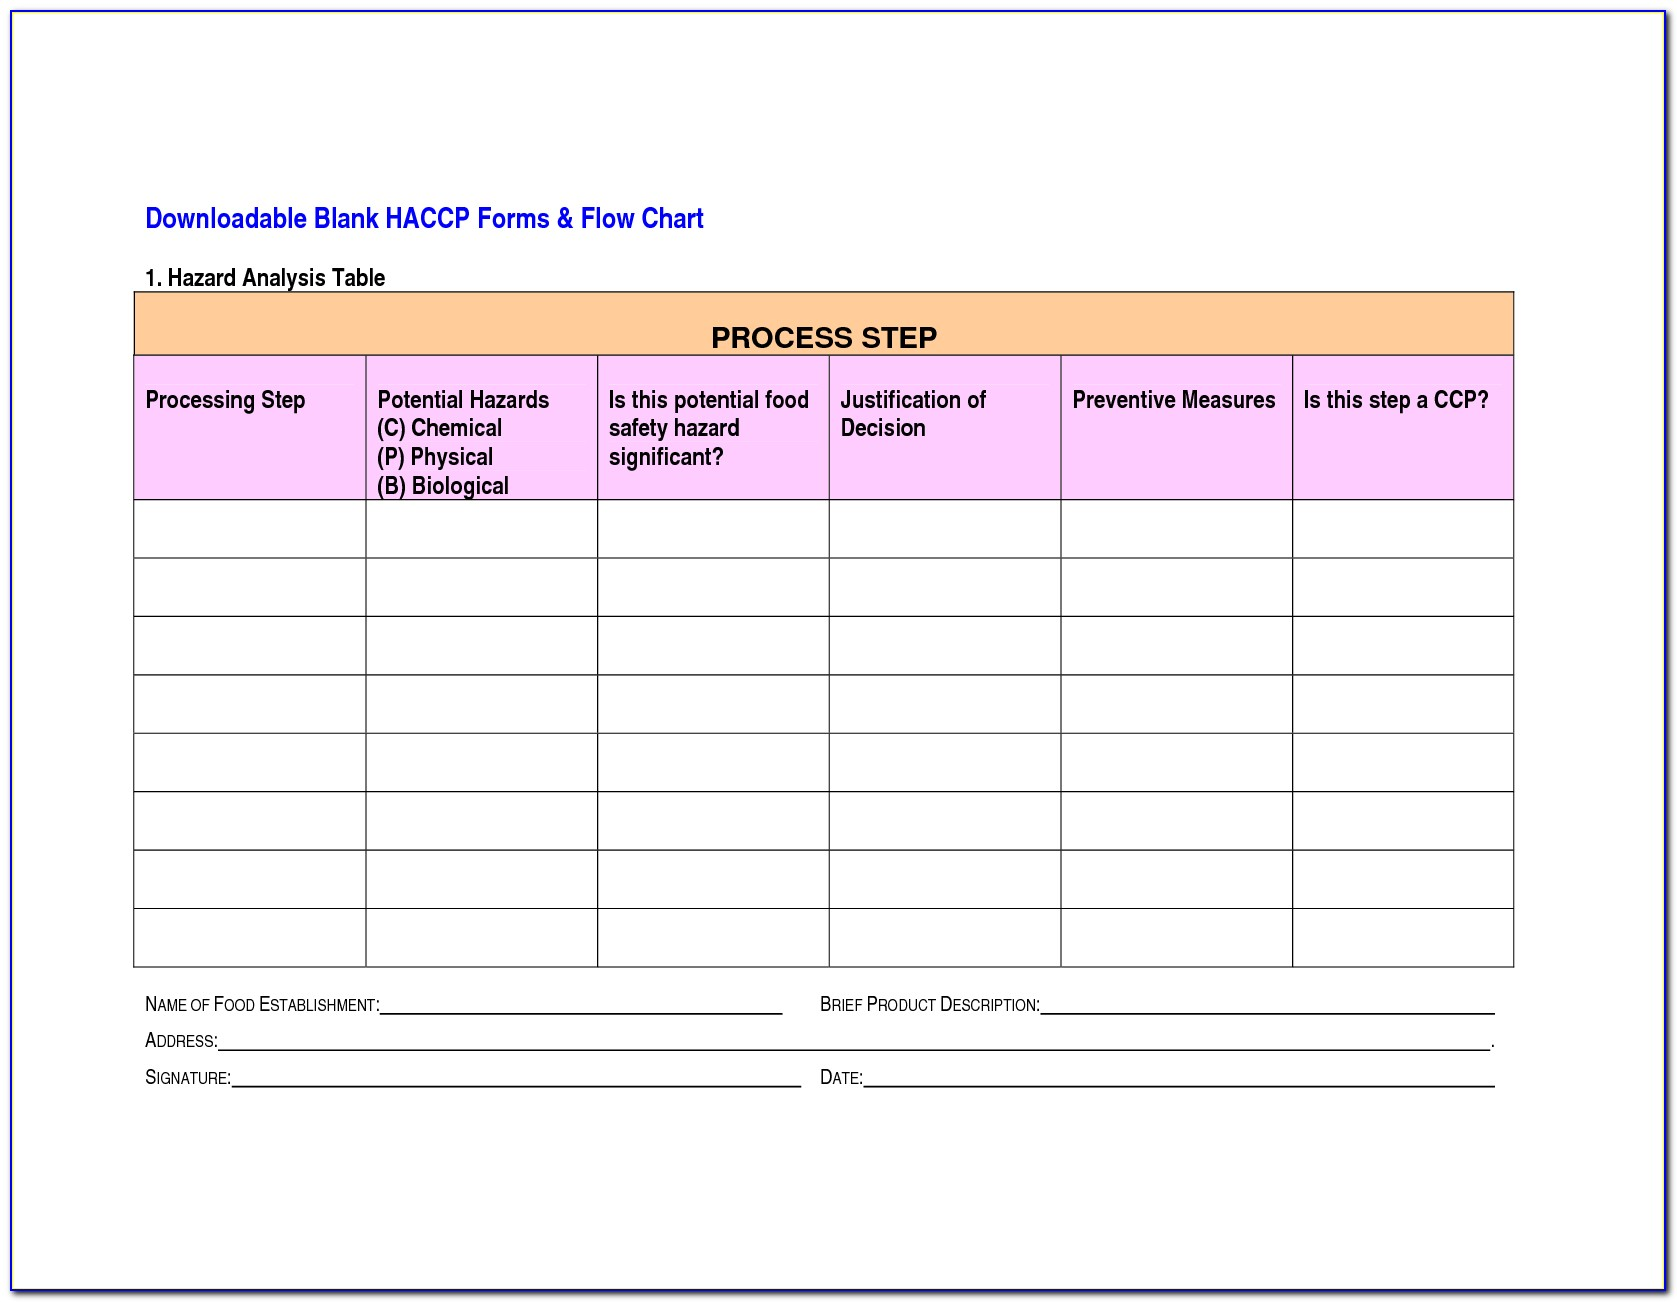 Blank Haccp Forms